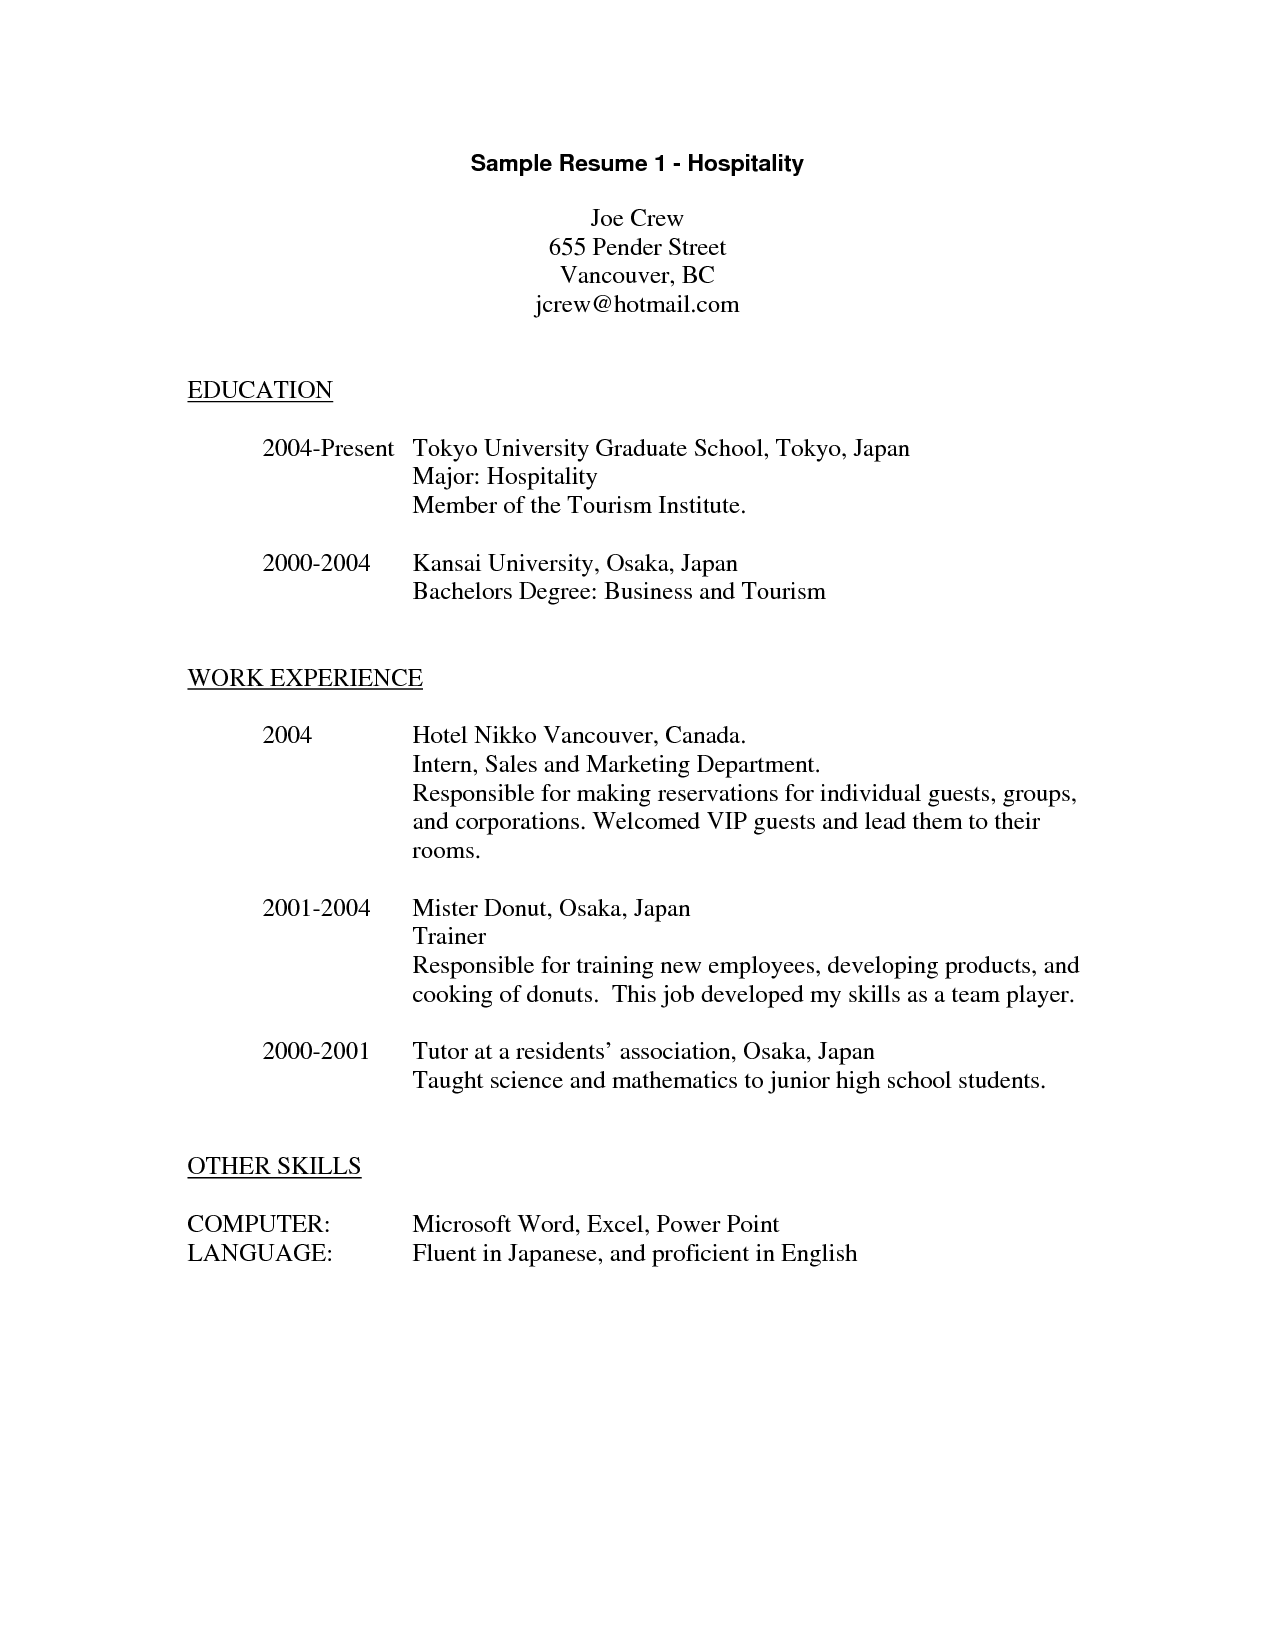 sample resume for hospitality industry sample resume for hospitality industry sample resume for